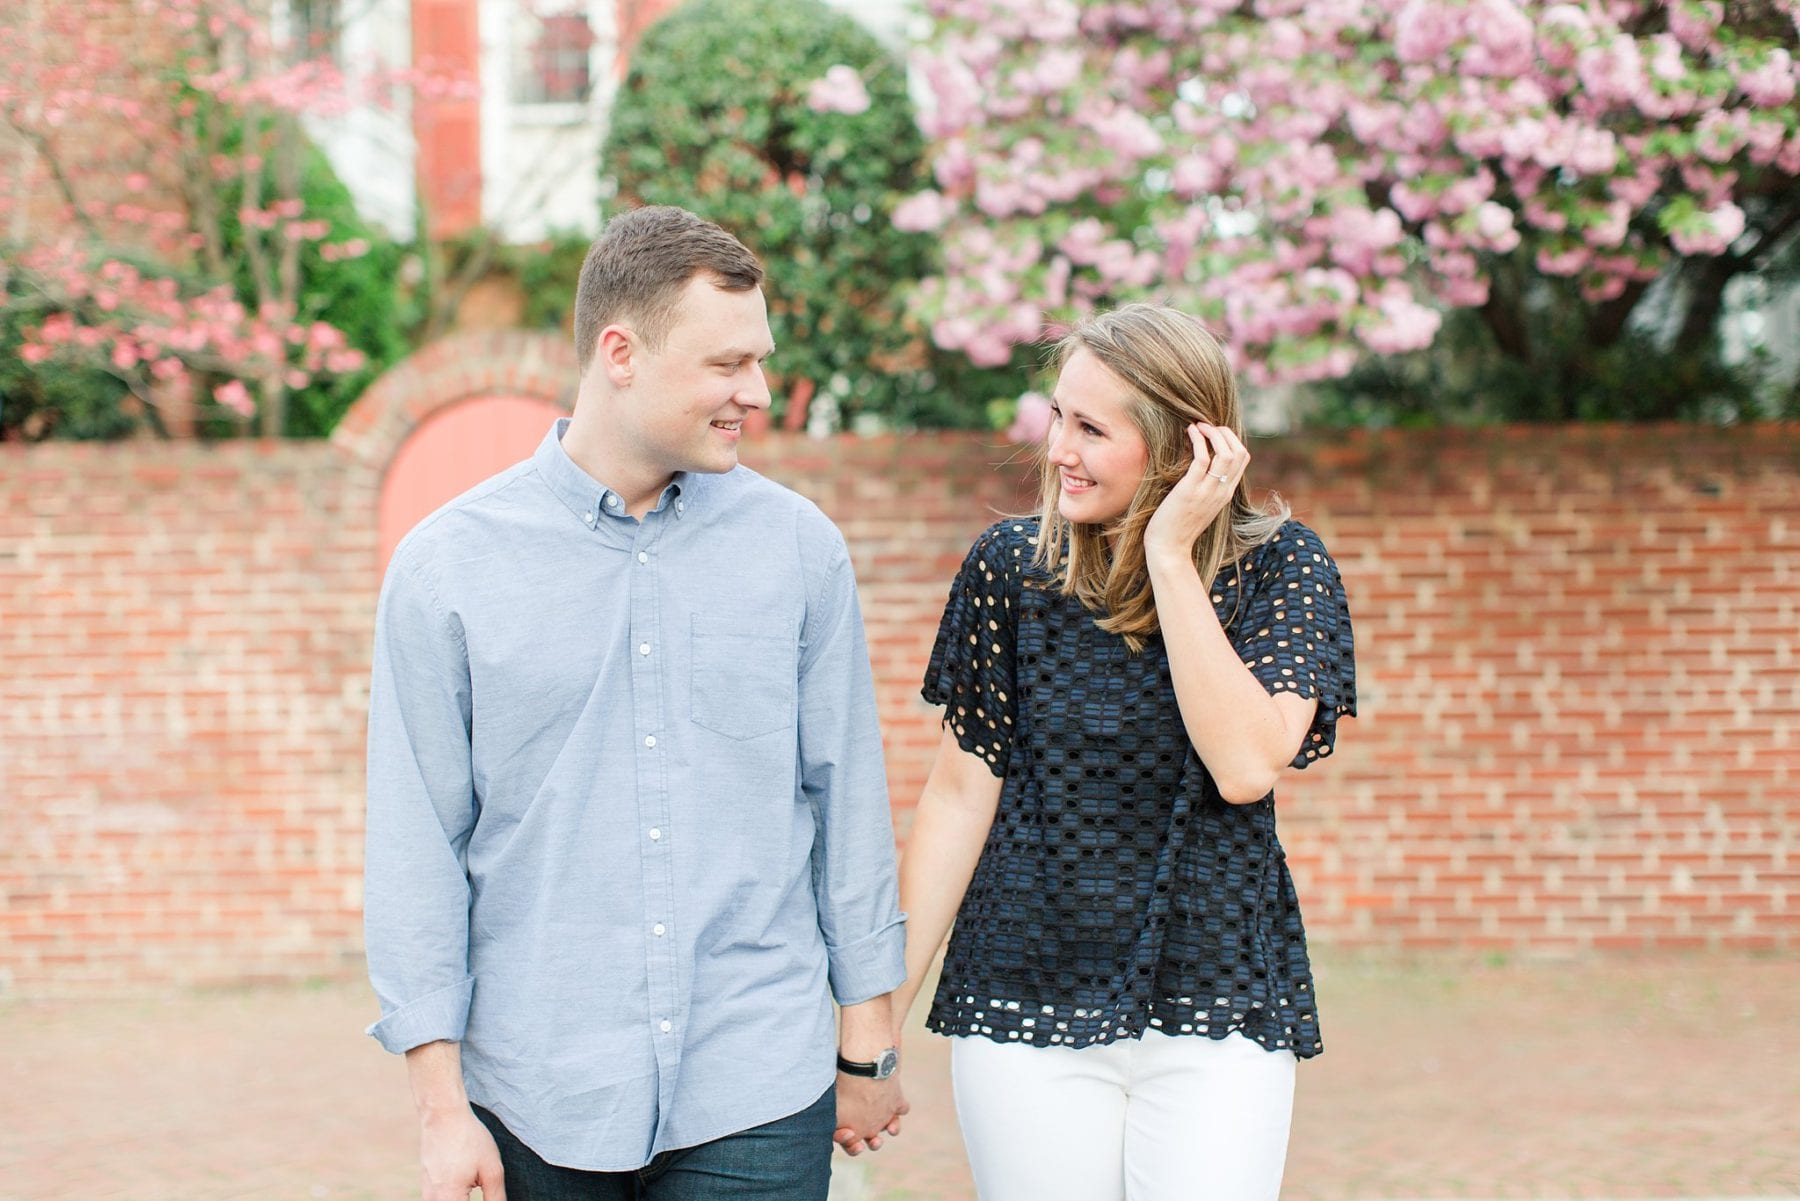 Springtime Old Town Alexandria Engagement Session Matt & Maxie Megan Kelsey Photography-194.jpg